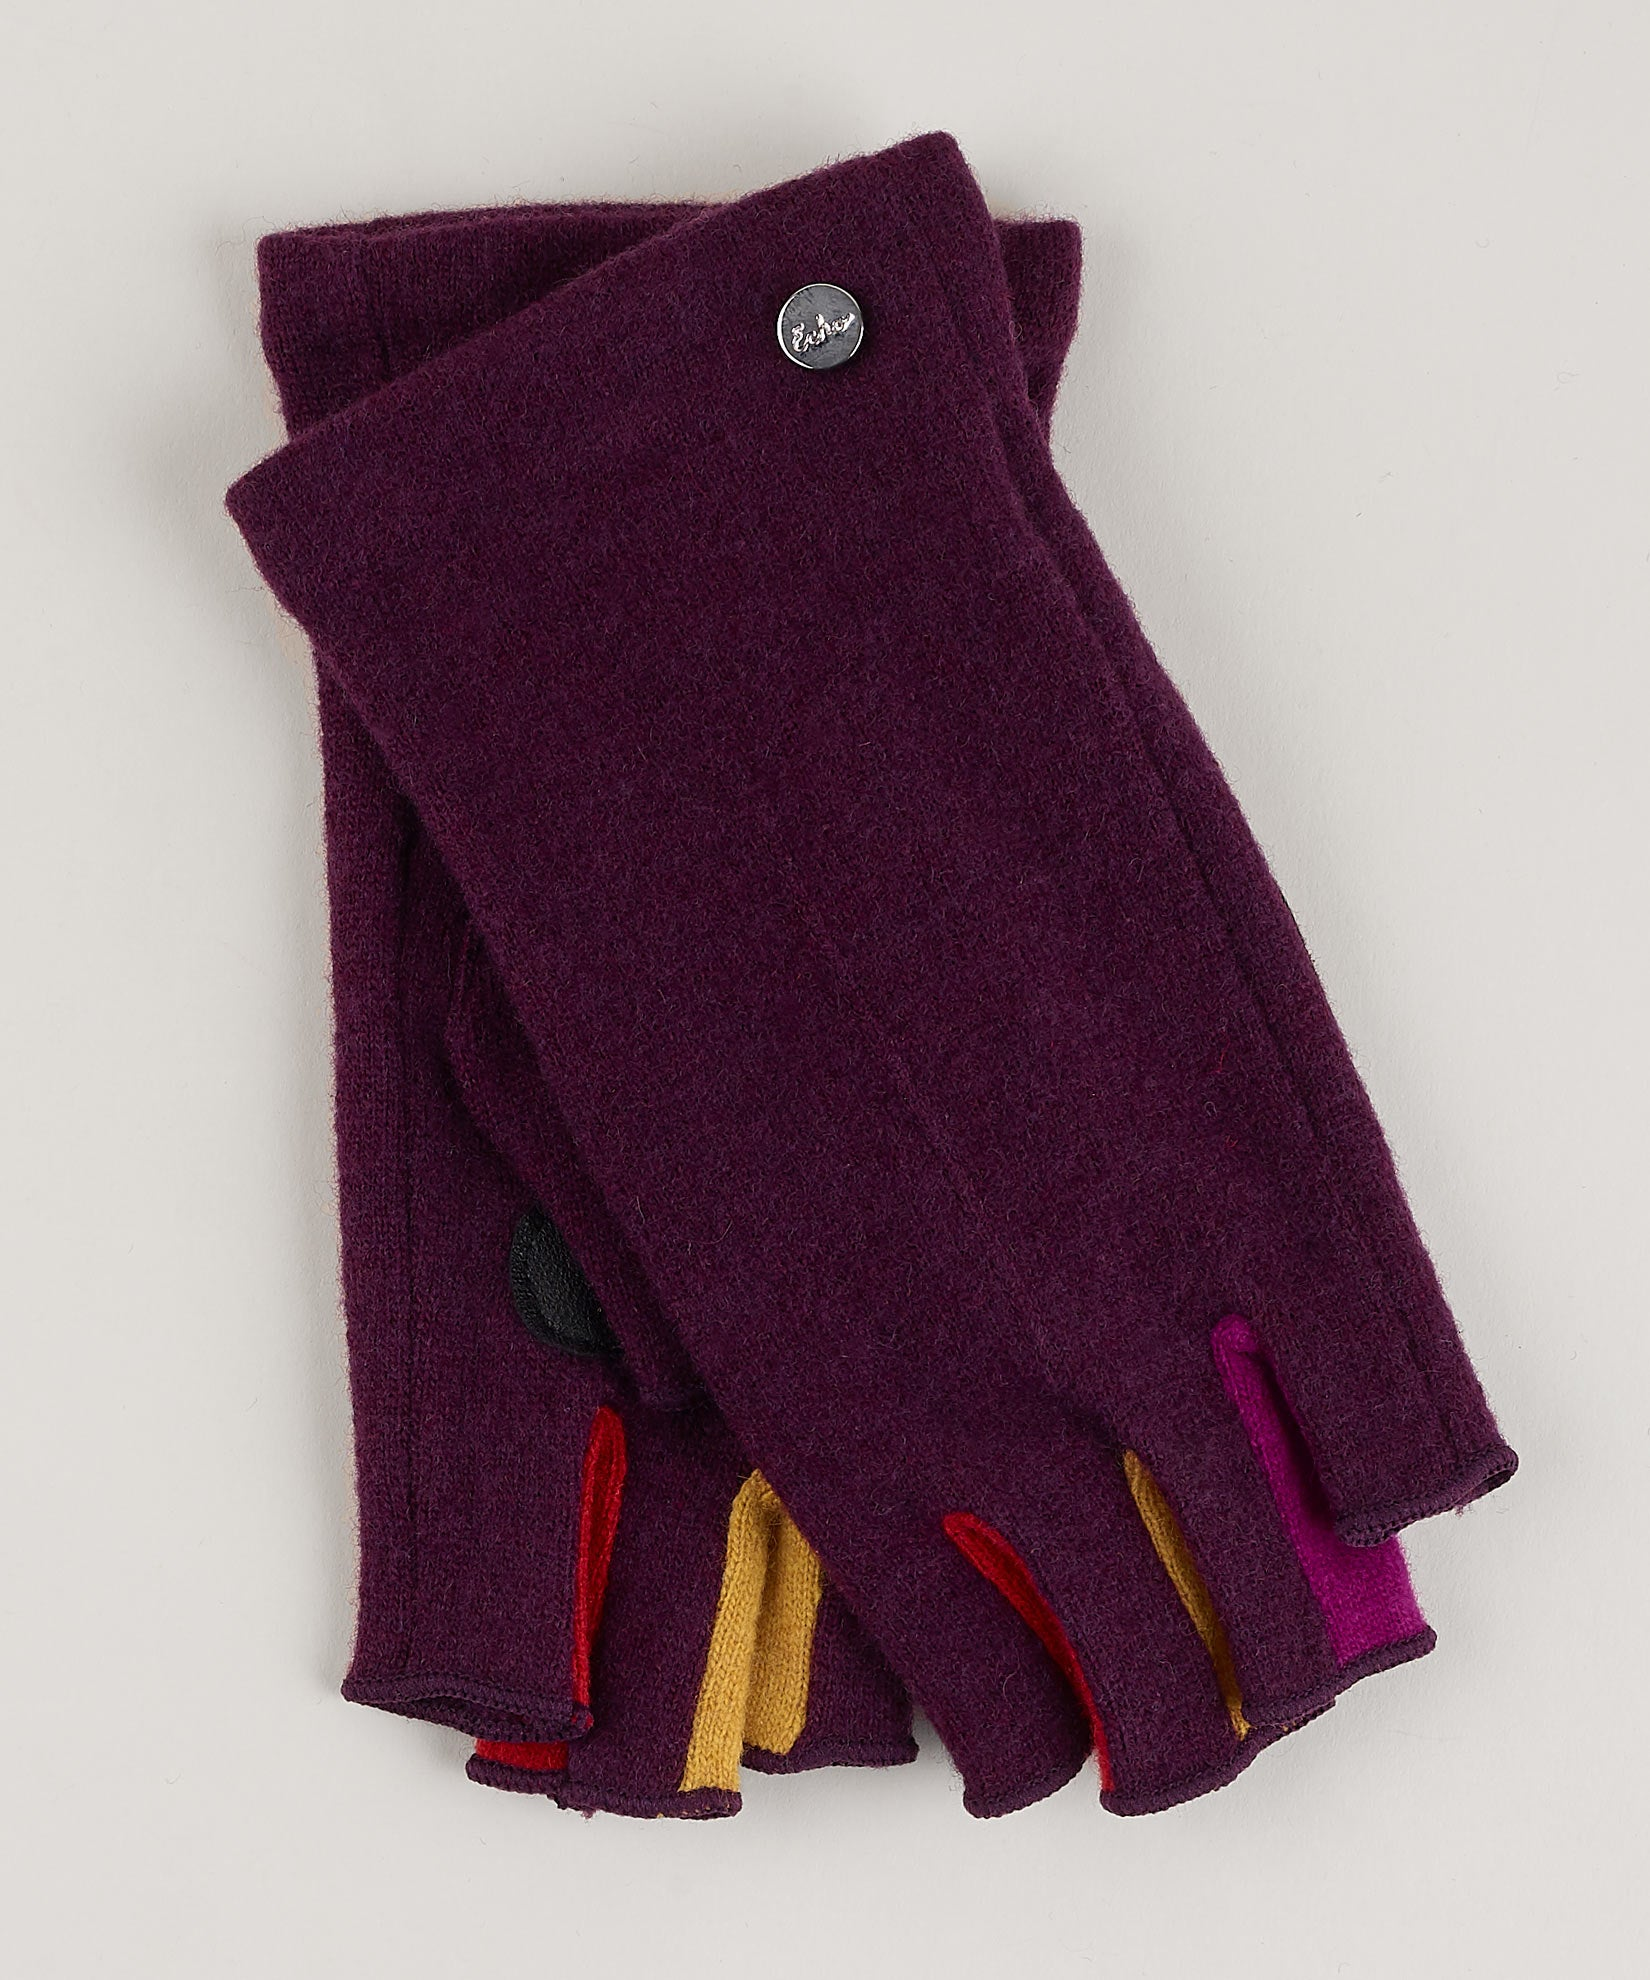 Pickled Beet - Colorblock Fourchette Fingerless Glove